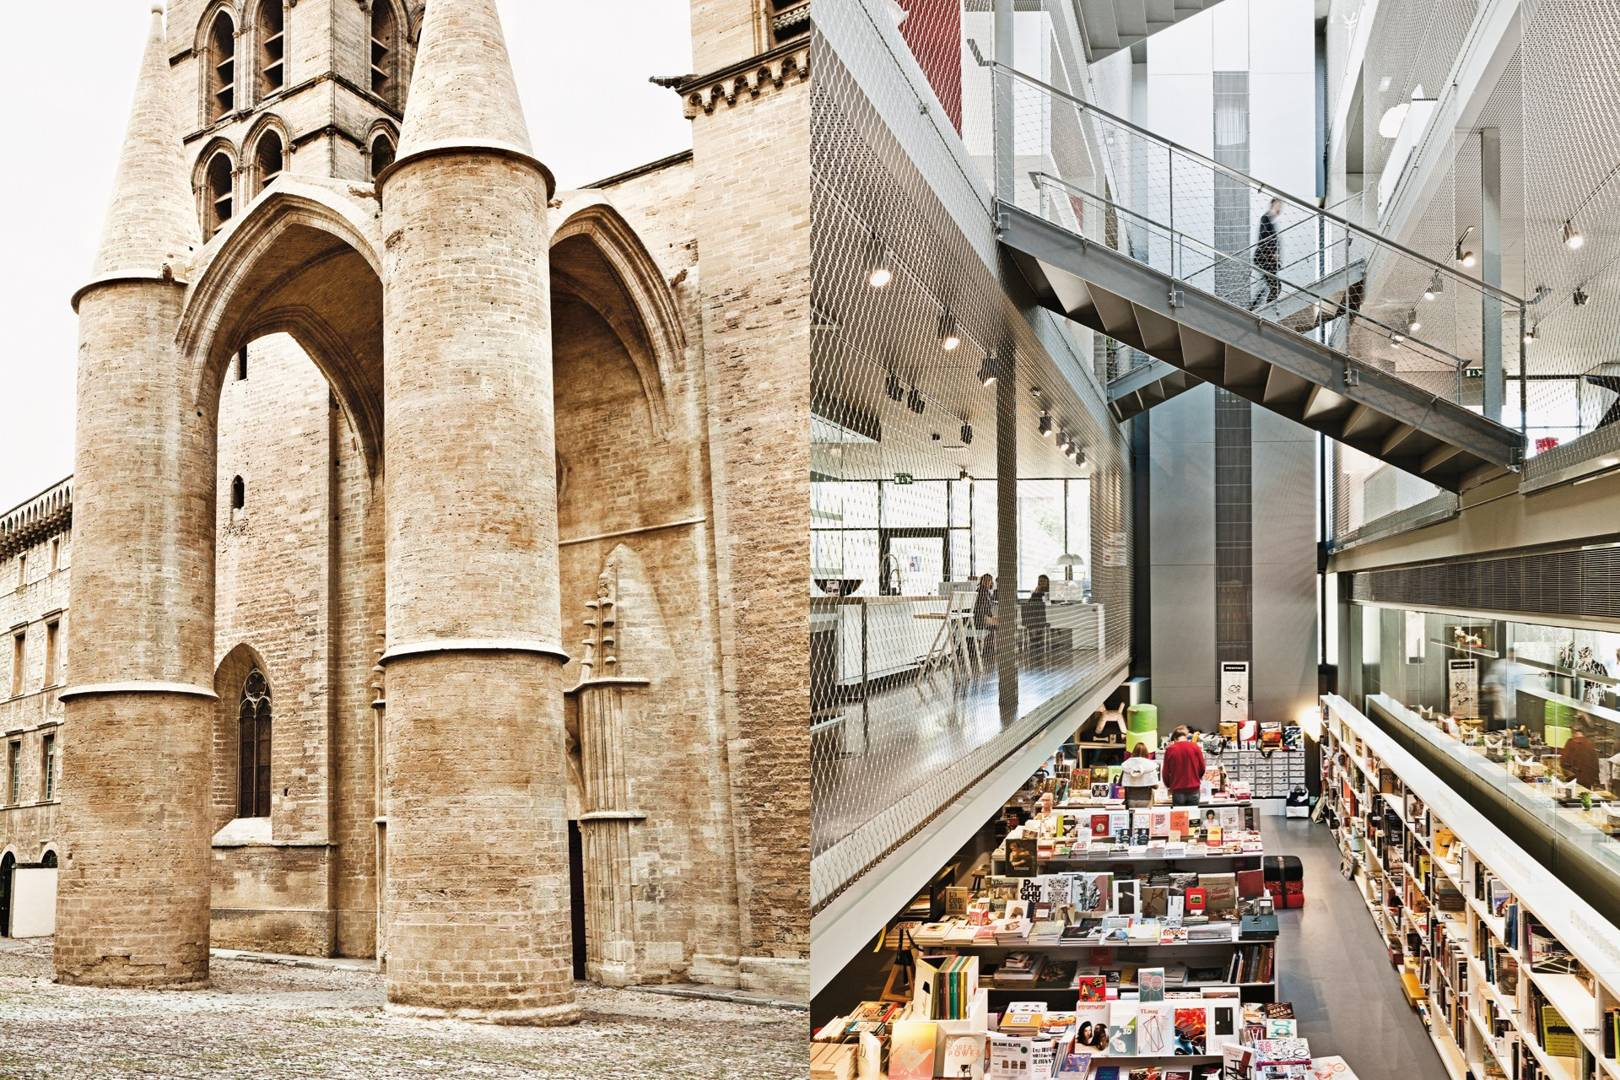 Buzz Shop Montpellier design and architecture in montpellier, france | cn traveller